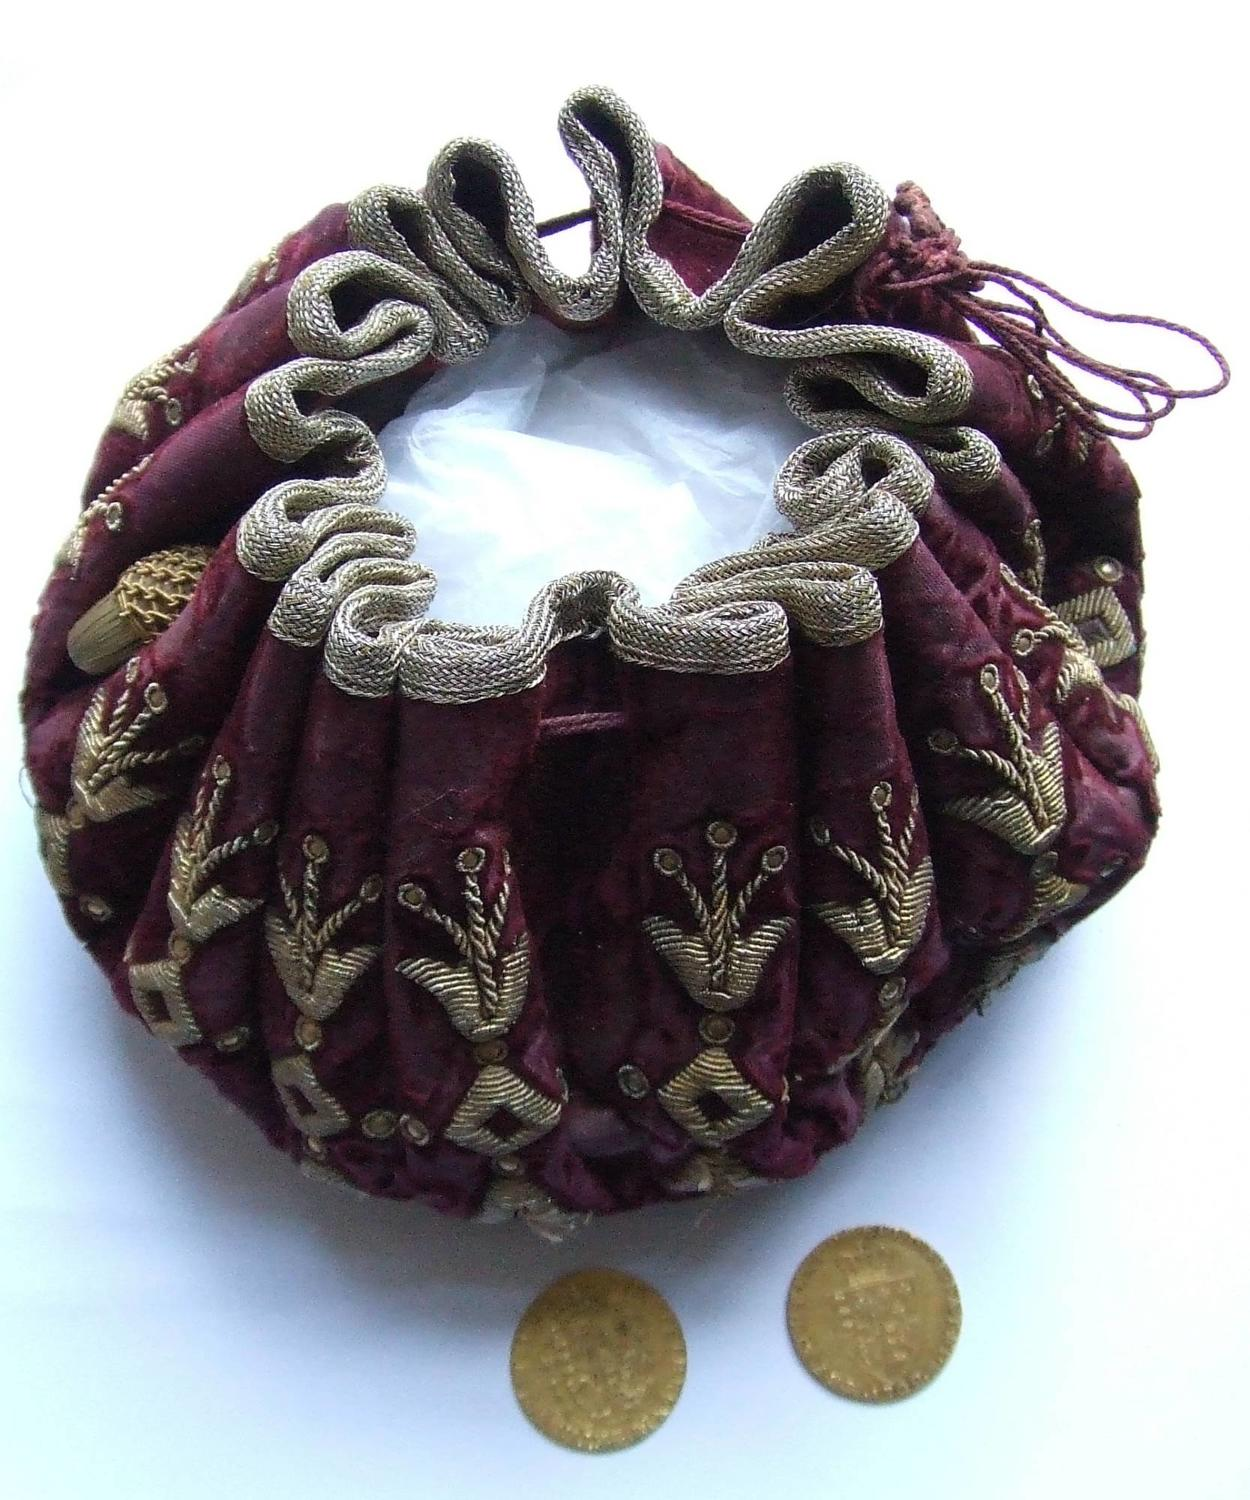 17th Century Gaming Purse